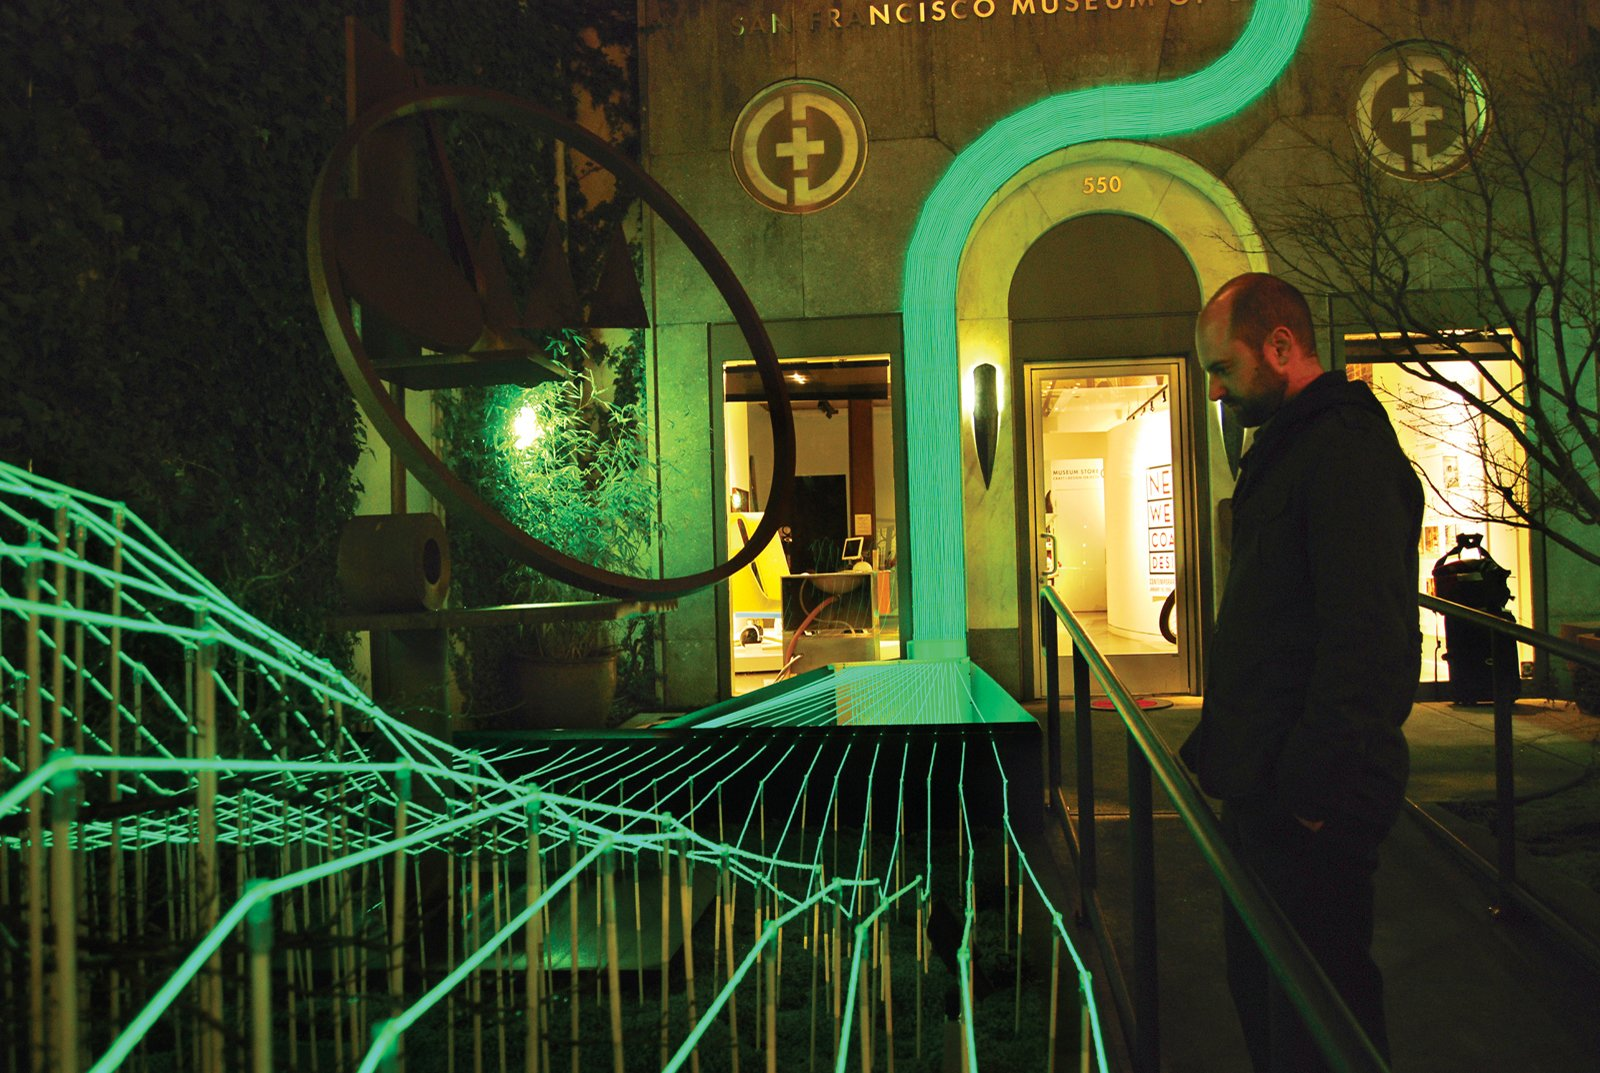 To lure visitors into an exhibition at San Francisco's Museum of Craft and Design, Wilson strung up solar-powered phosphorus-coated wires, creating a glowing path to the museum's front door.  Photo 1 of 6 in Landscape Architecture: Marcel Wilson